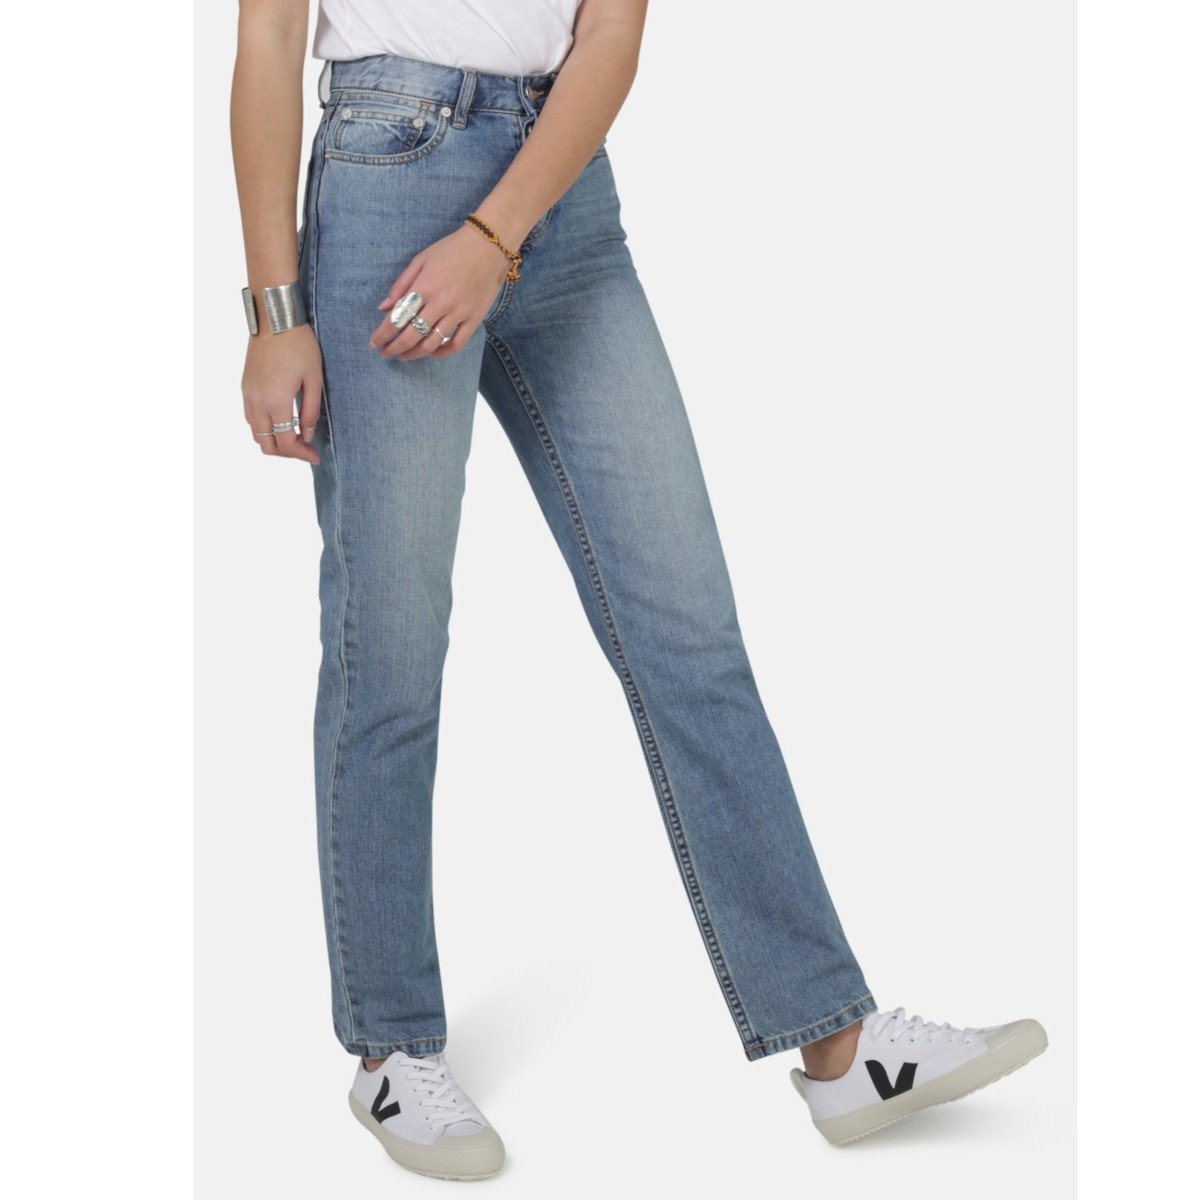 Jeans Libby Slim Fit Light Wash 100% organic cotton